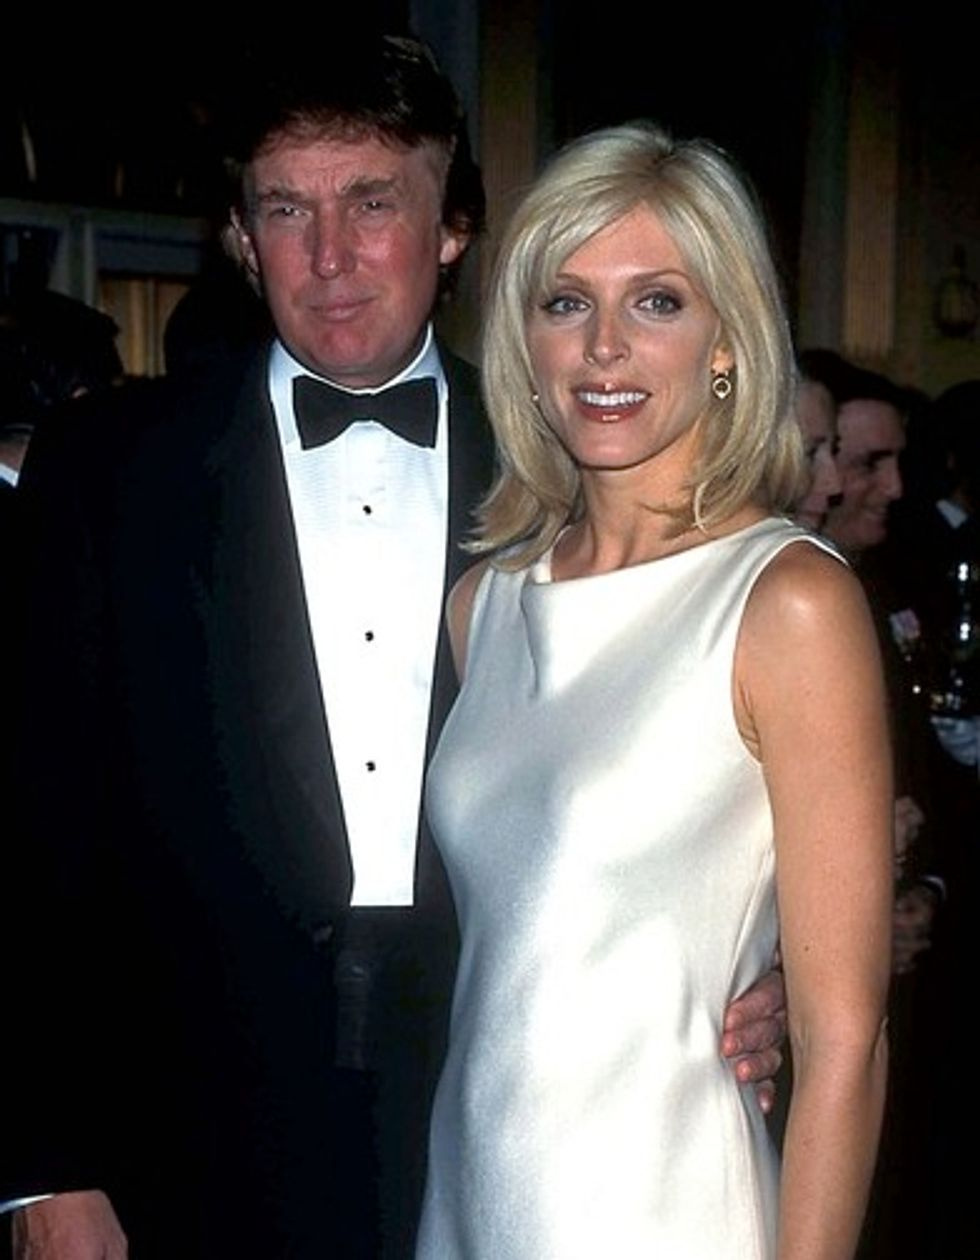 Trump Wives Beauty: What We Can Learn From Ivana, Marla and Melania